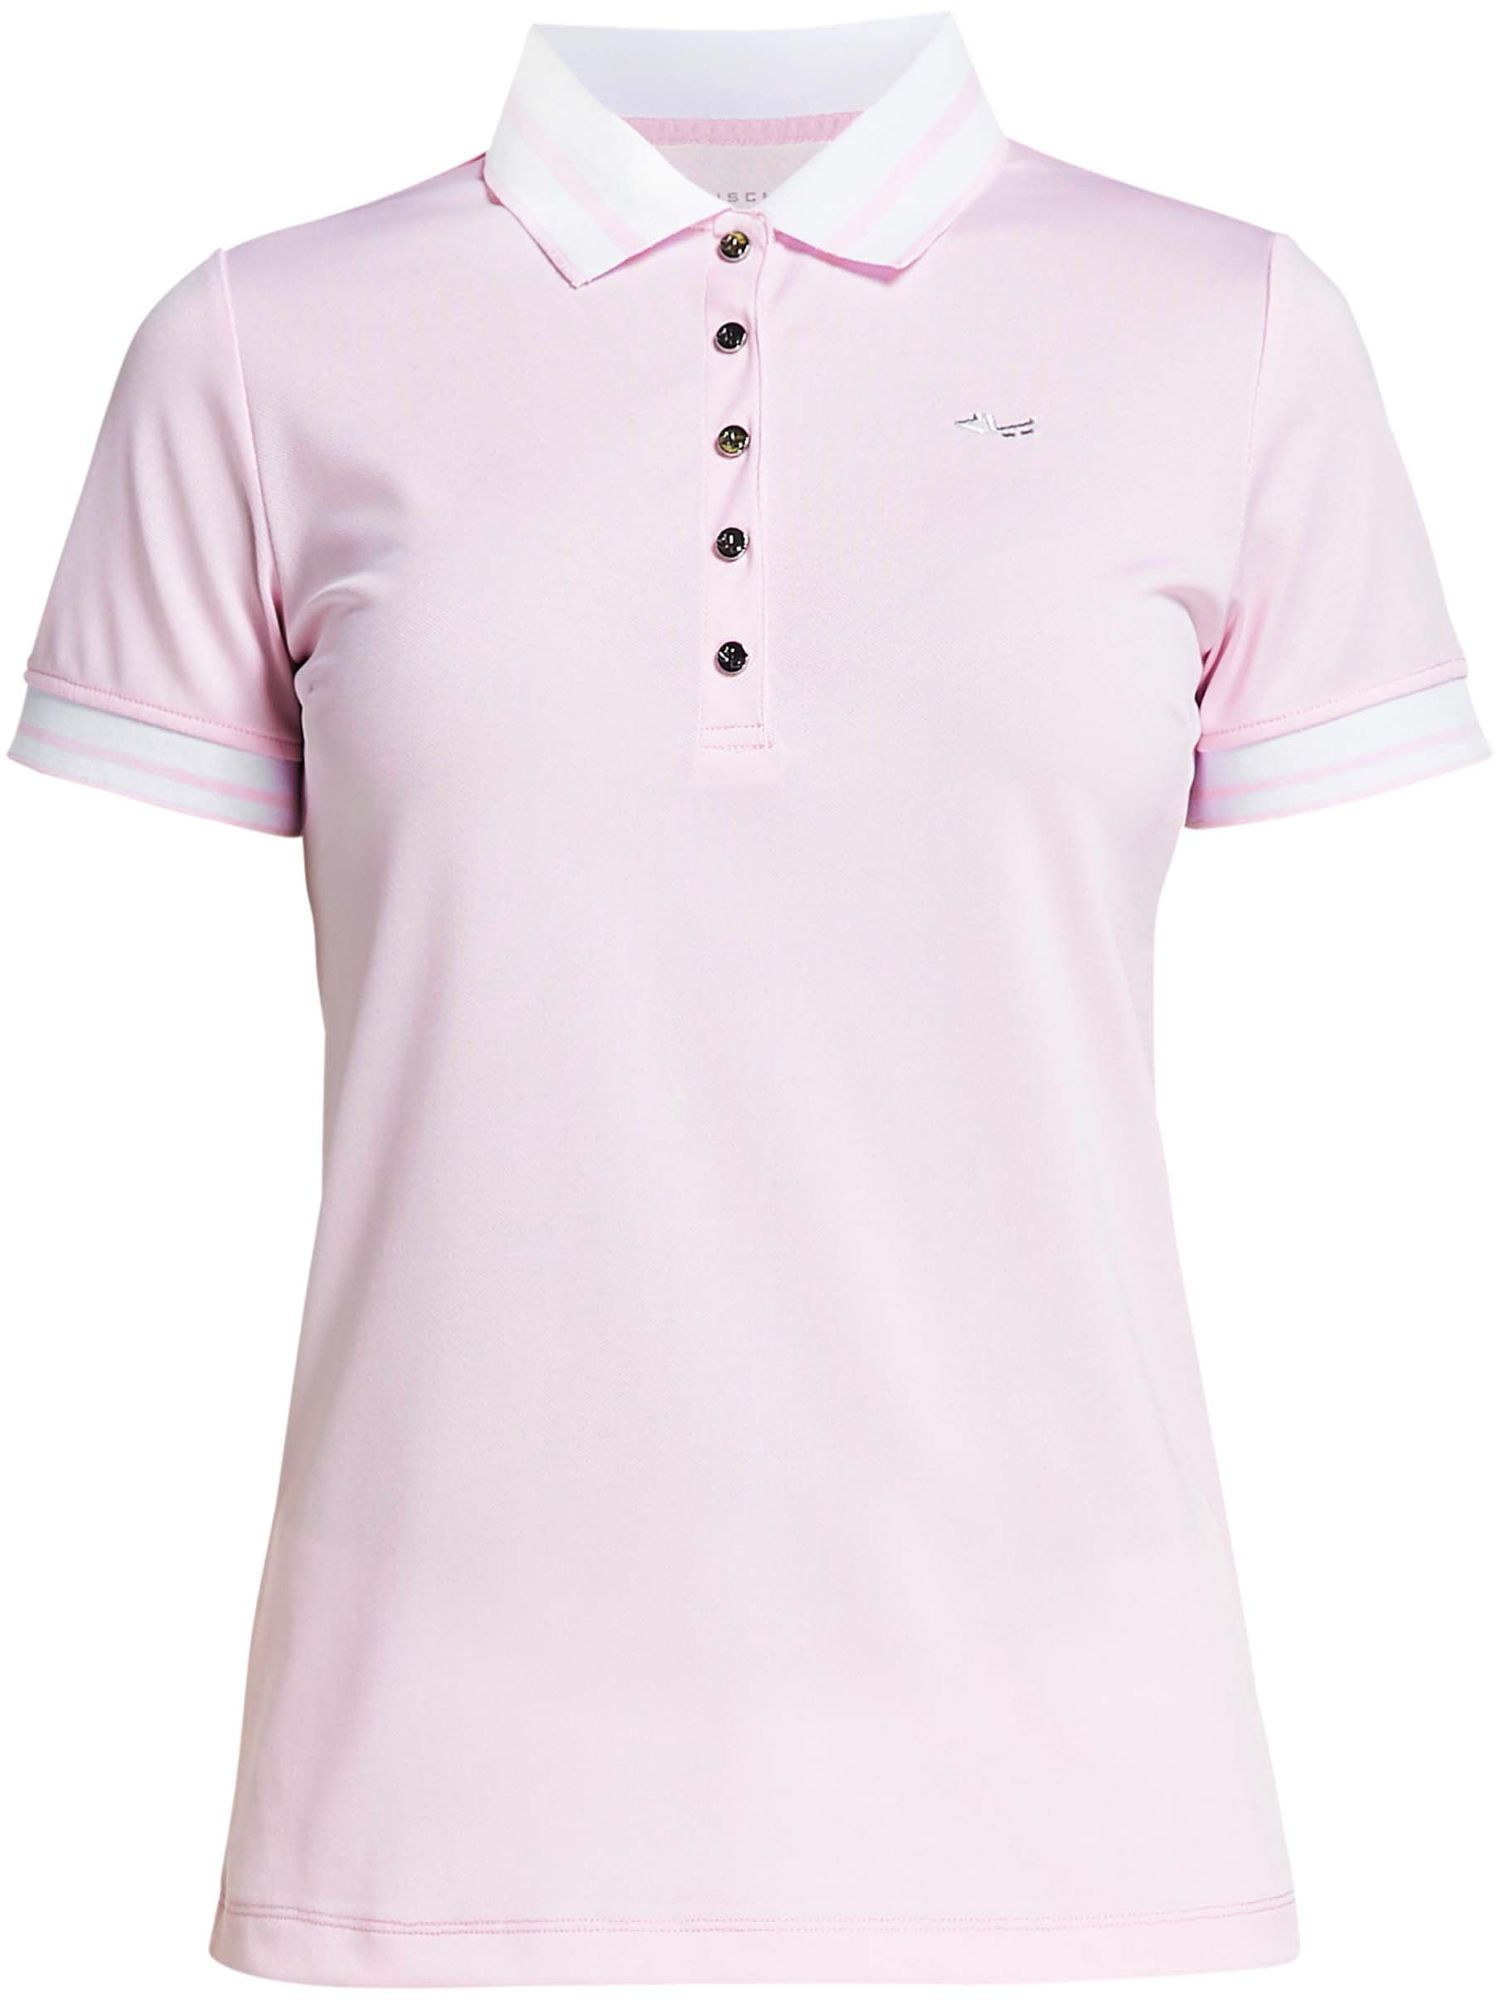 Rohnisch Pim Short Sleeved Polo, 161 Cherry Blossom